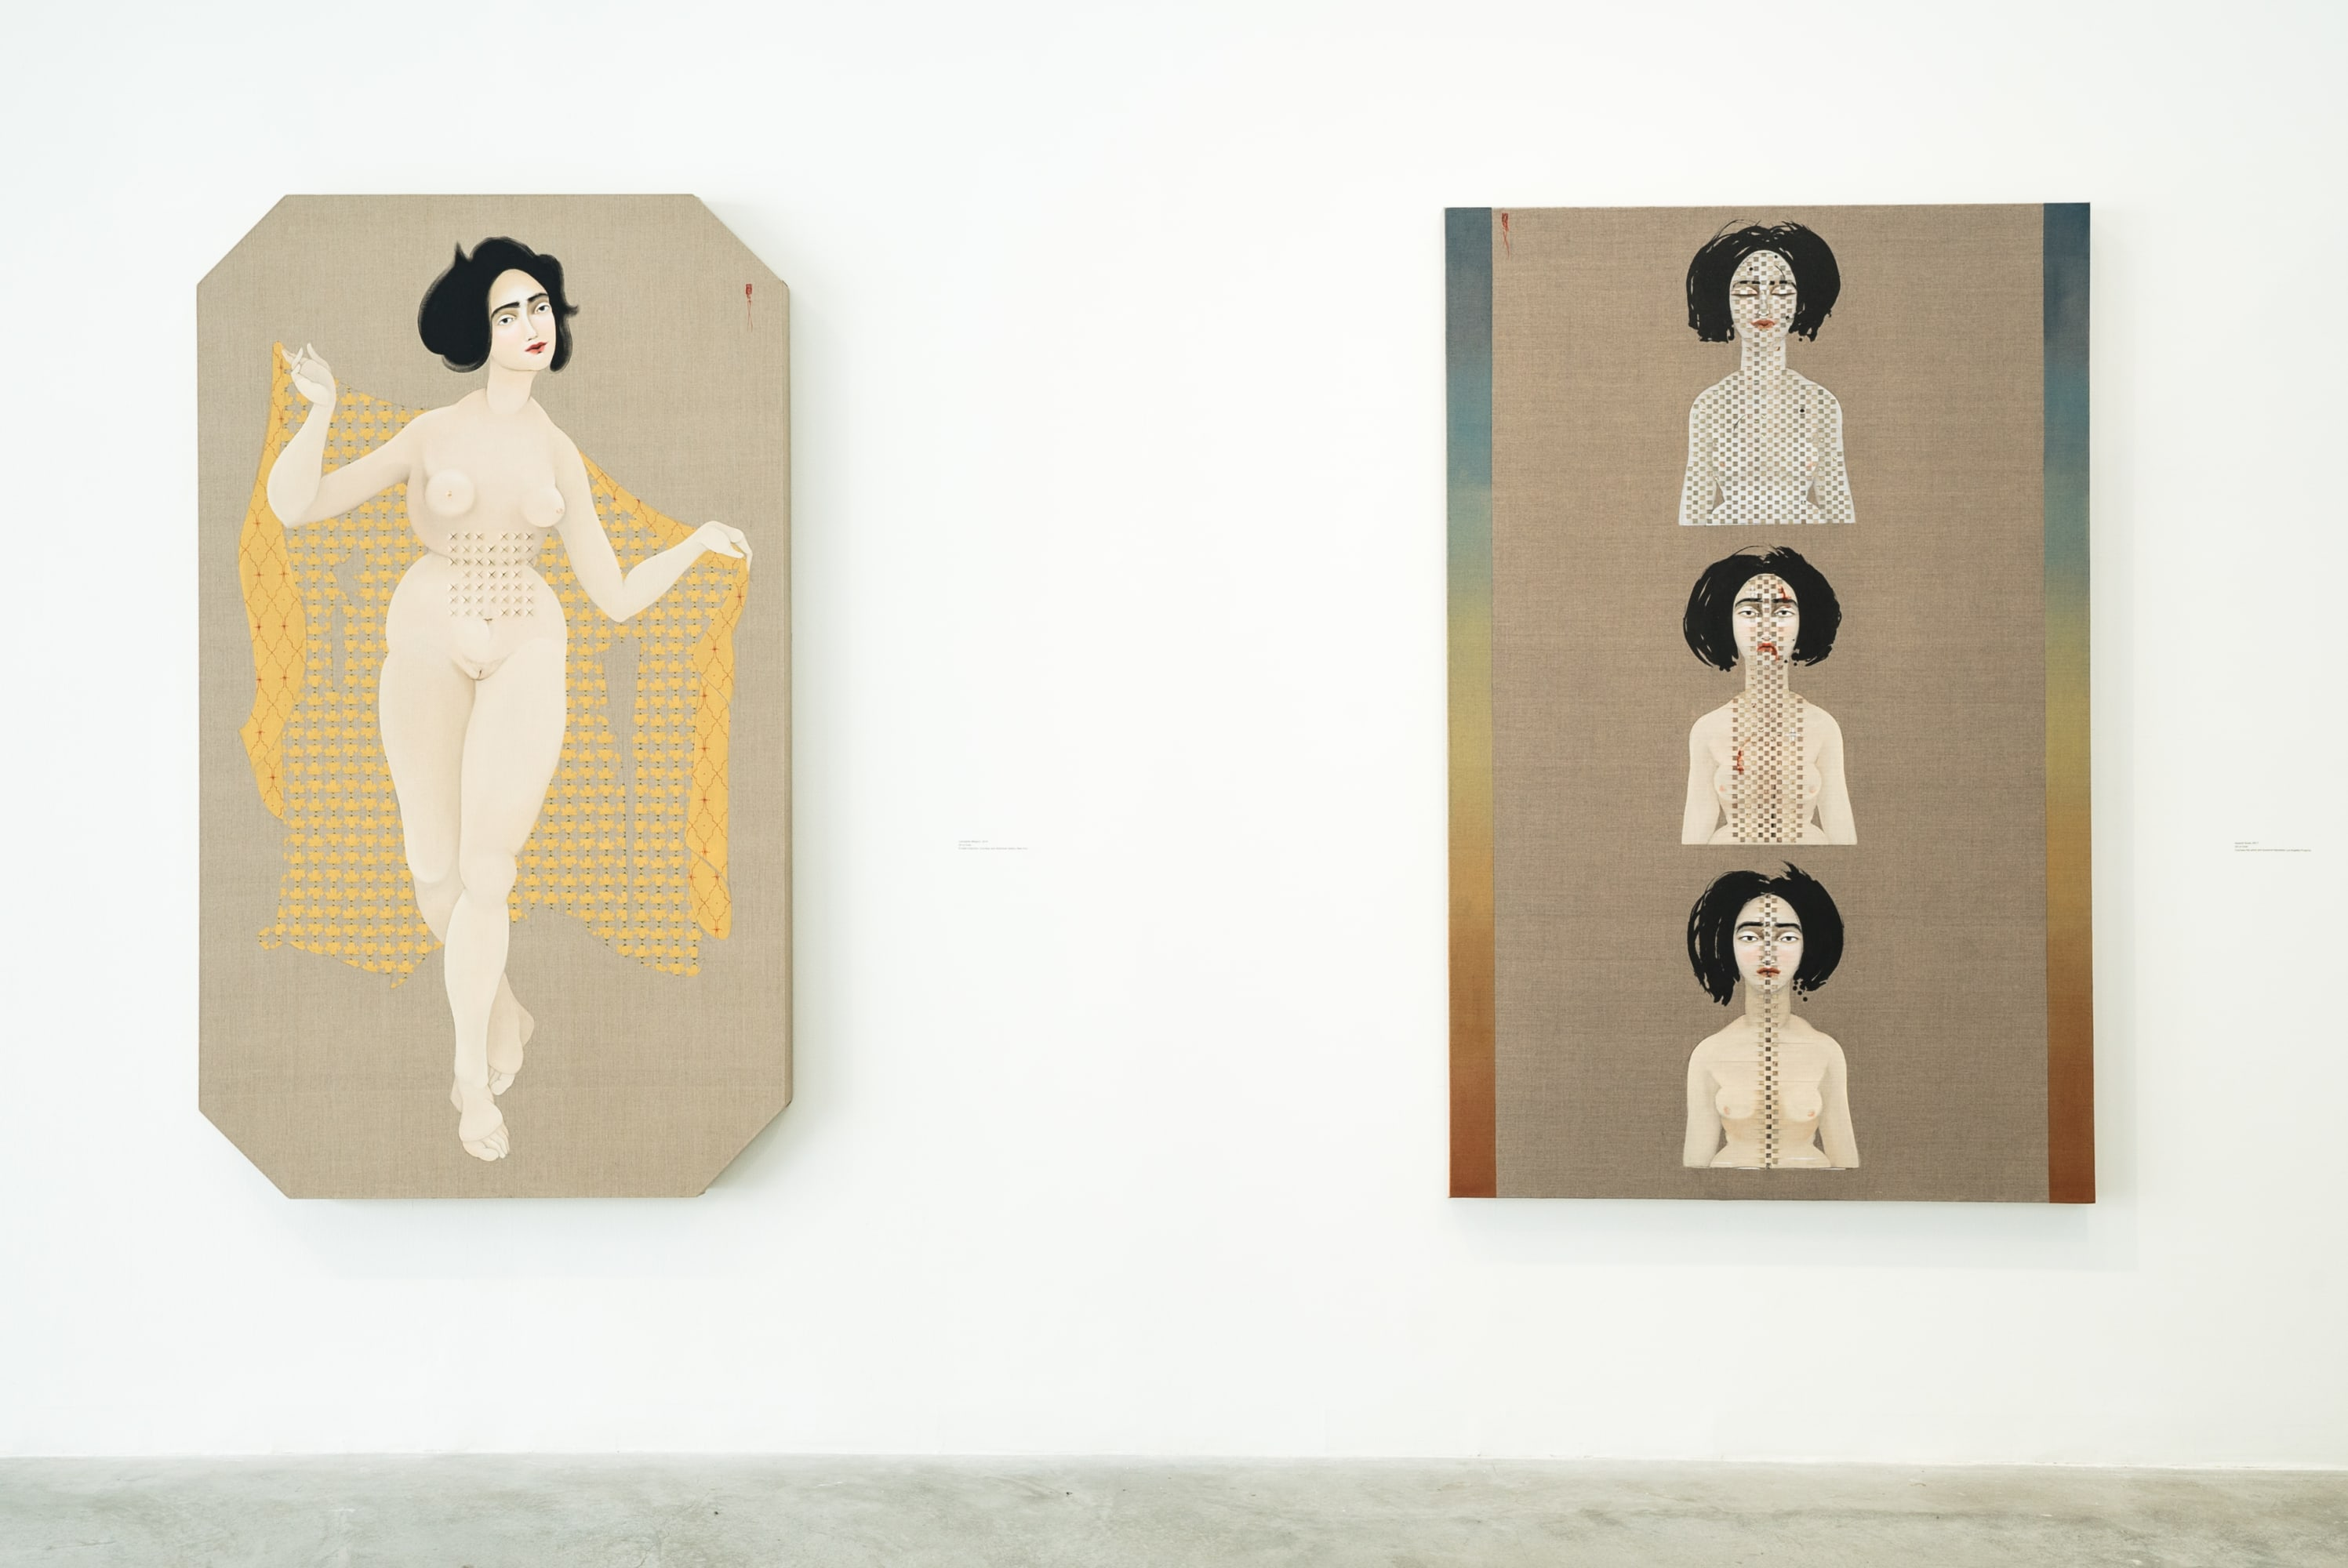 Hayv Kahraman Acts of Reparation